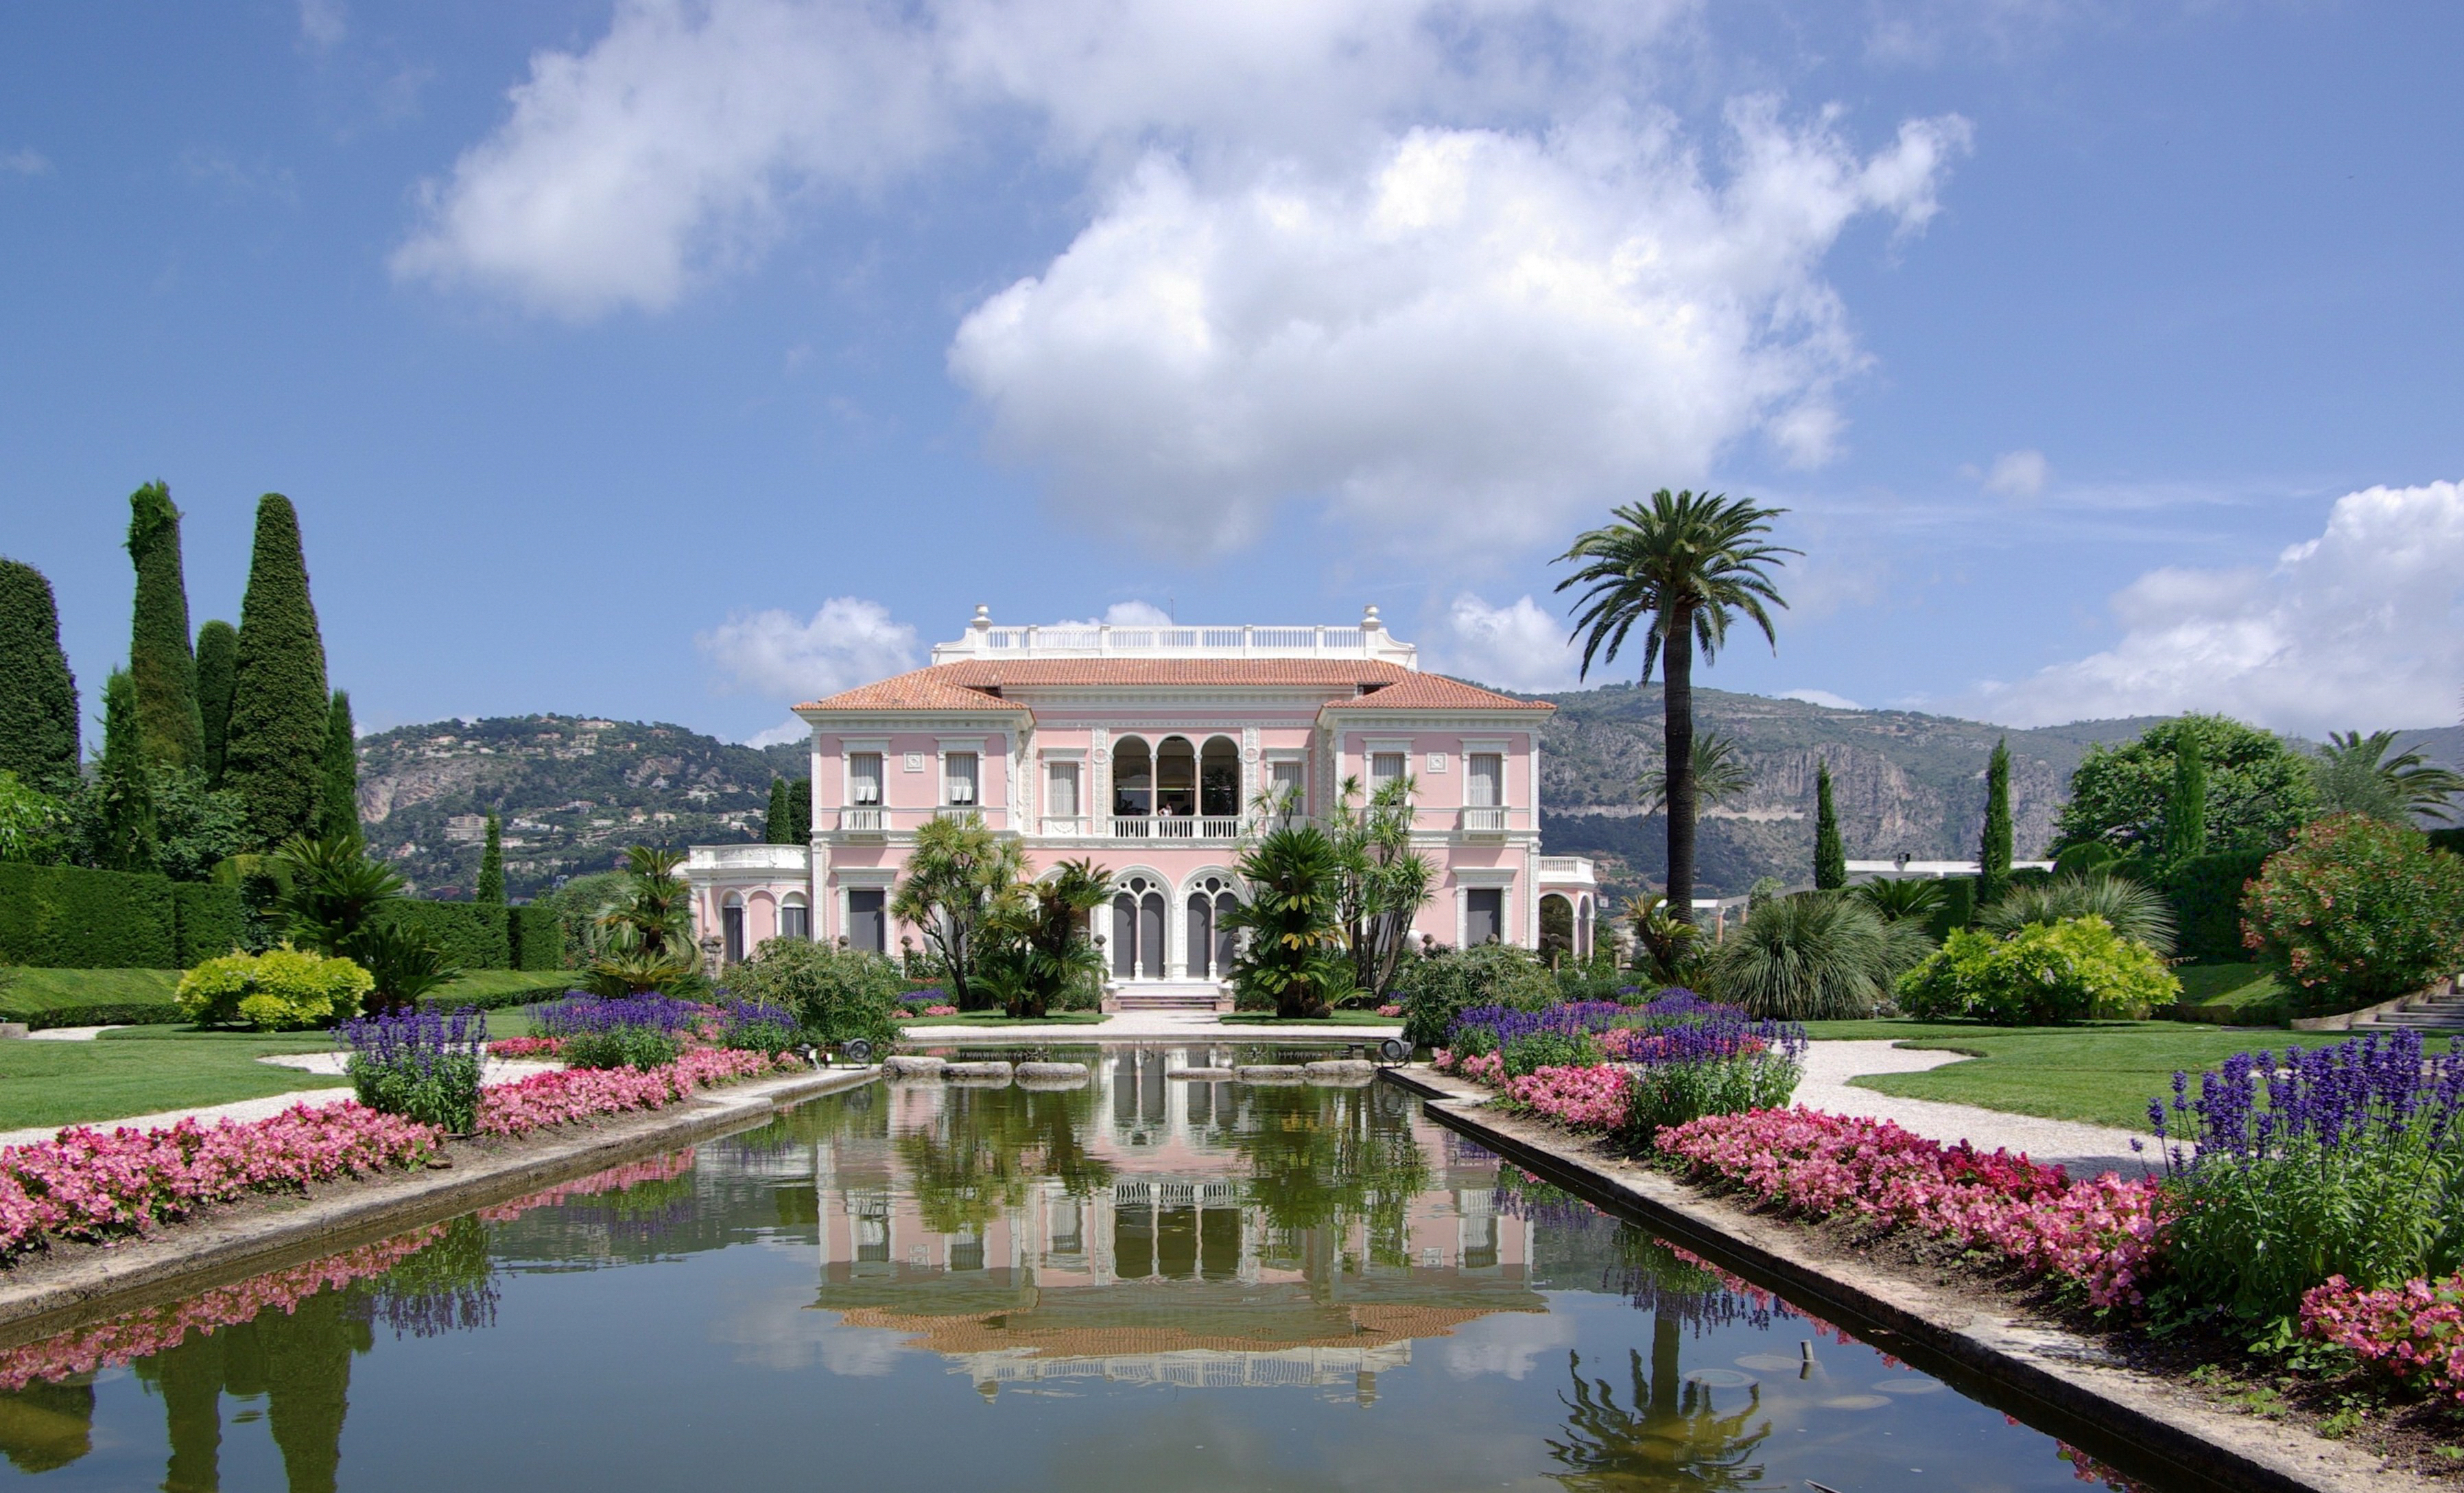 villa 5 Villas to Discover in France Villa Ephrussi de Rothschild BW 2011 06 10 11 42 29a